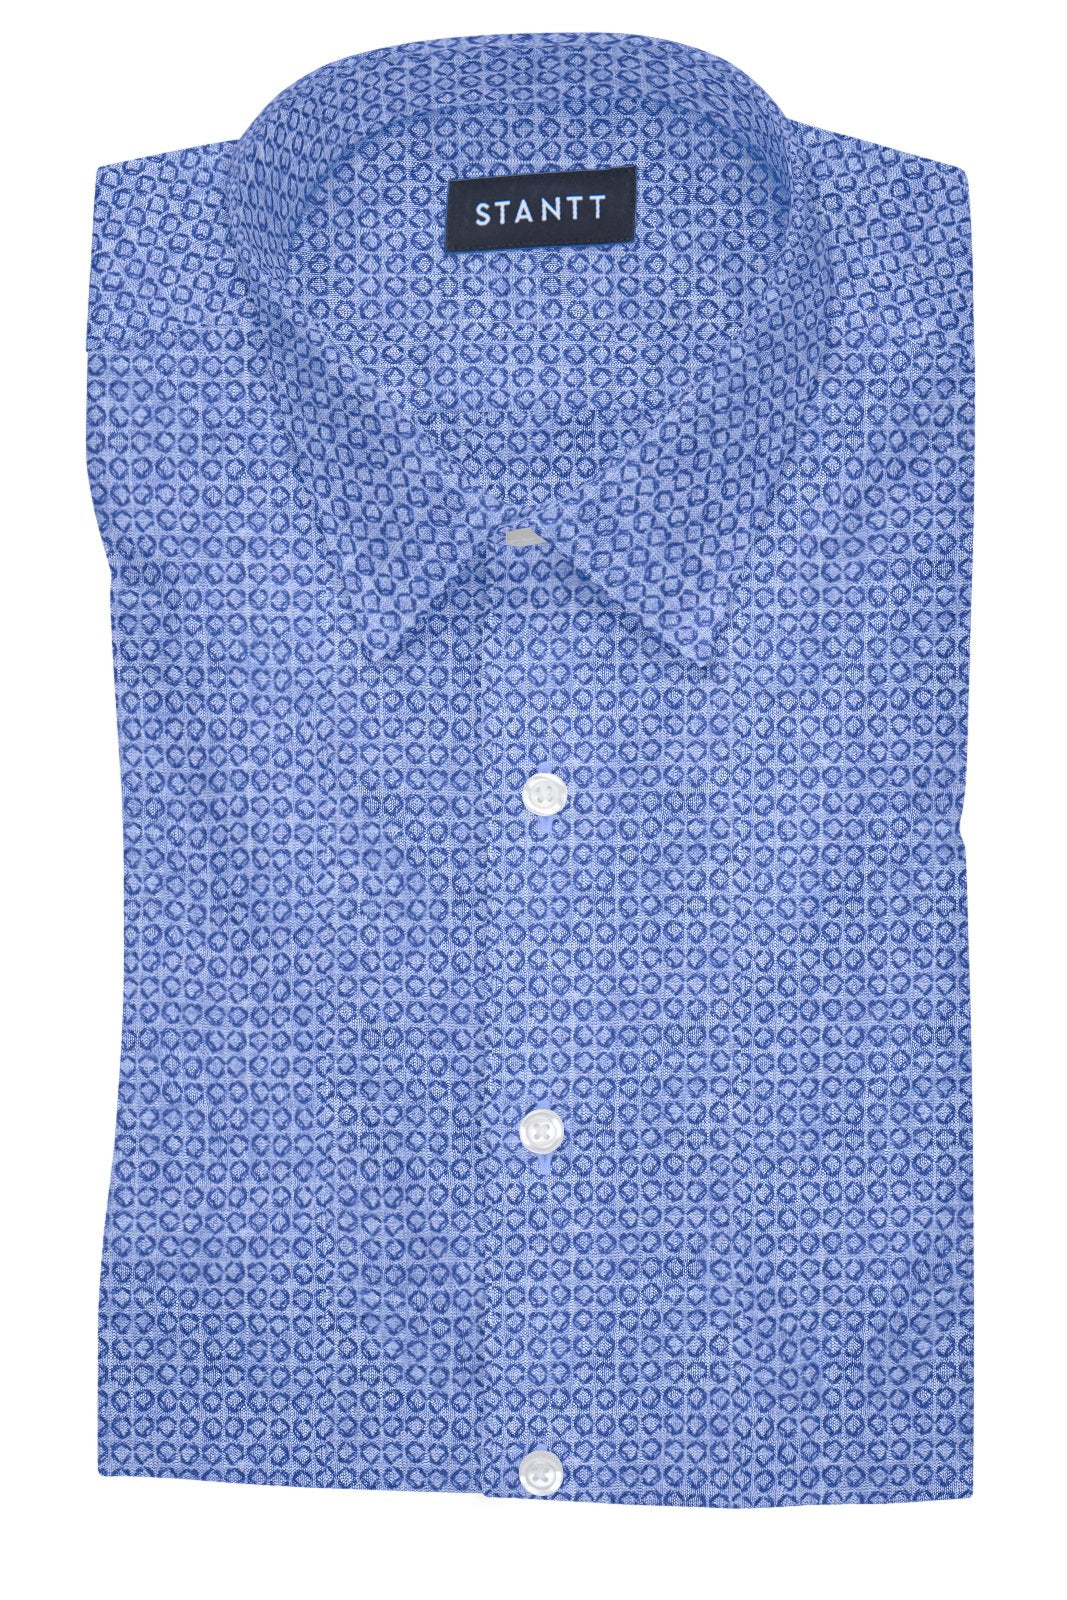 Chambray Geo Print: Semi-Spread Collar, French Cuff